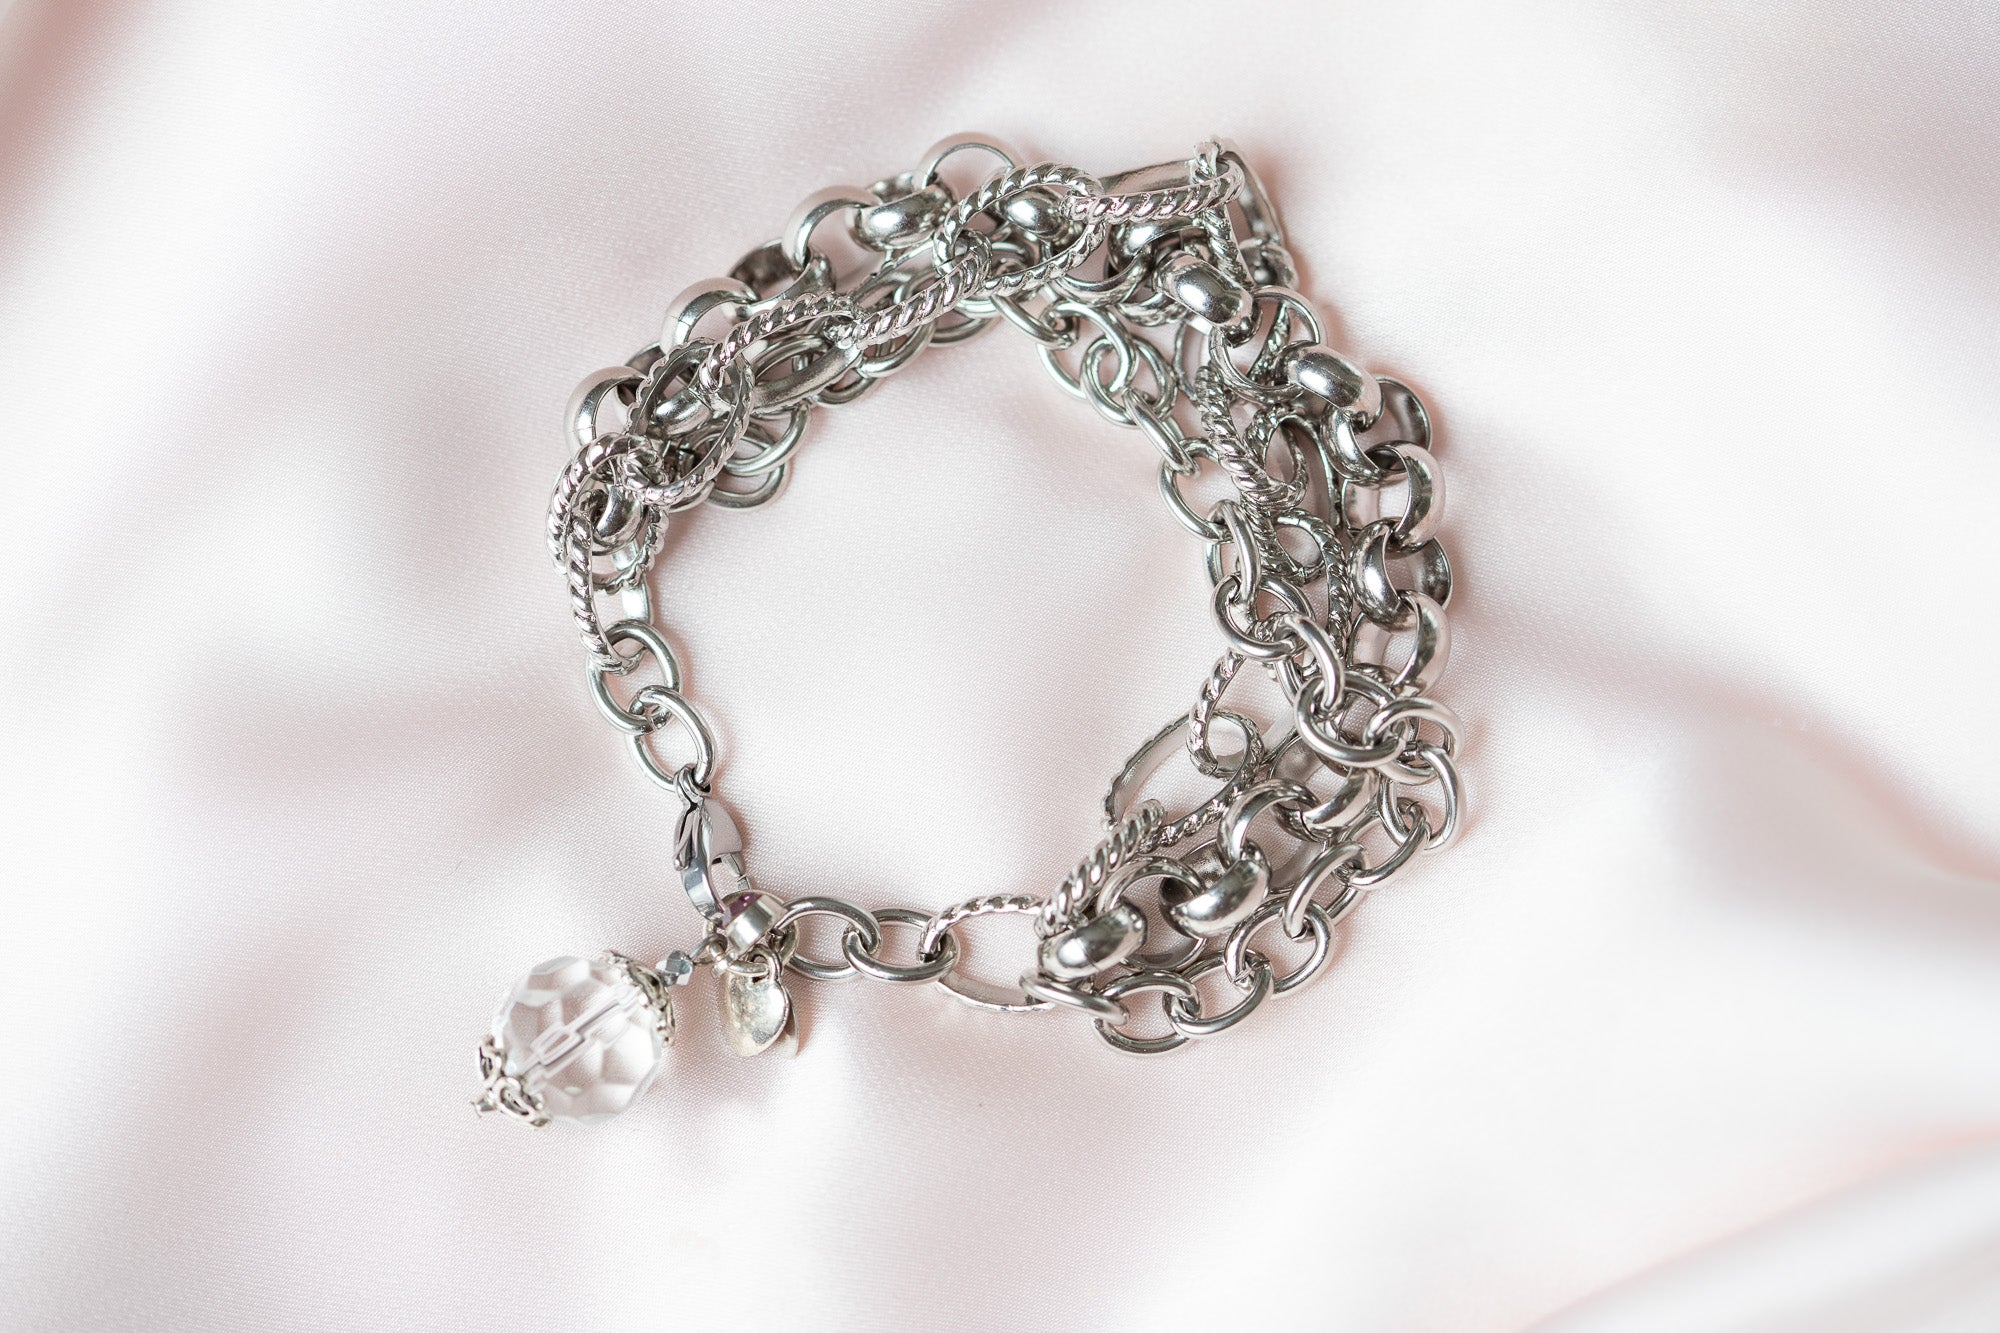 a Carolily Finery bracelet made from stainless steel chain, rose quartz and crystal